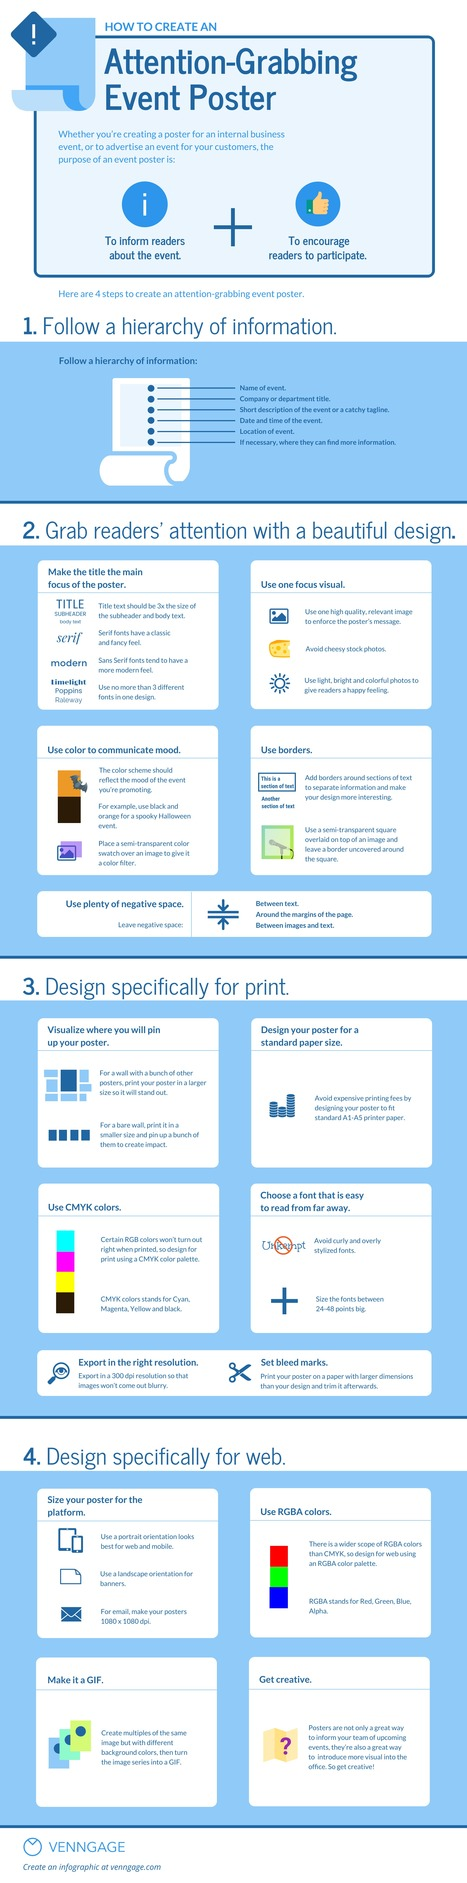 How to Create an Attention-Grabbing Poster Design for Any Event #Infographic | MarketingHits | Scoop.it